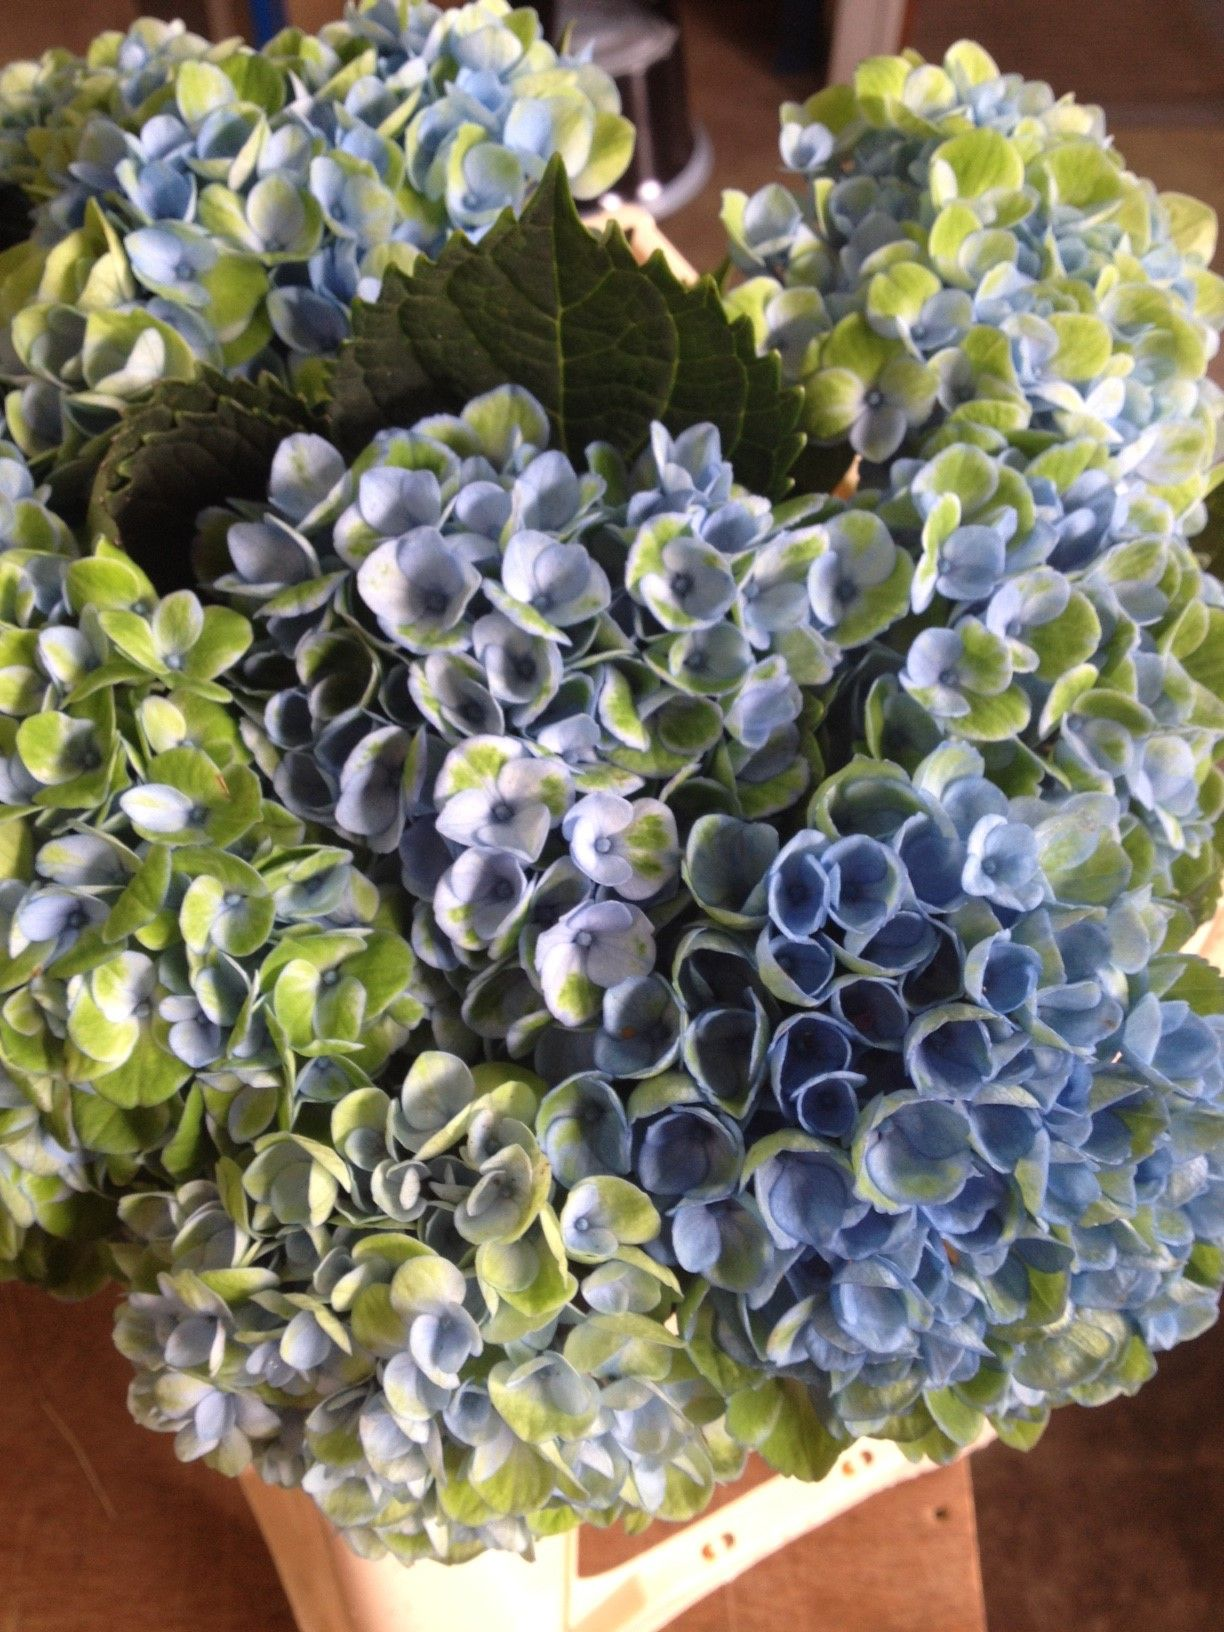 Mini Hydrangea - Magical Revolution...these stems were only 35cm tall. Sold in bunches of 10 stems from the Flowermonger the wholesale floral home delivery service.